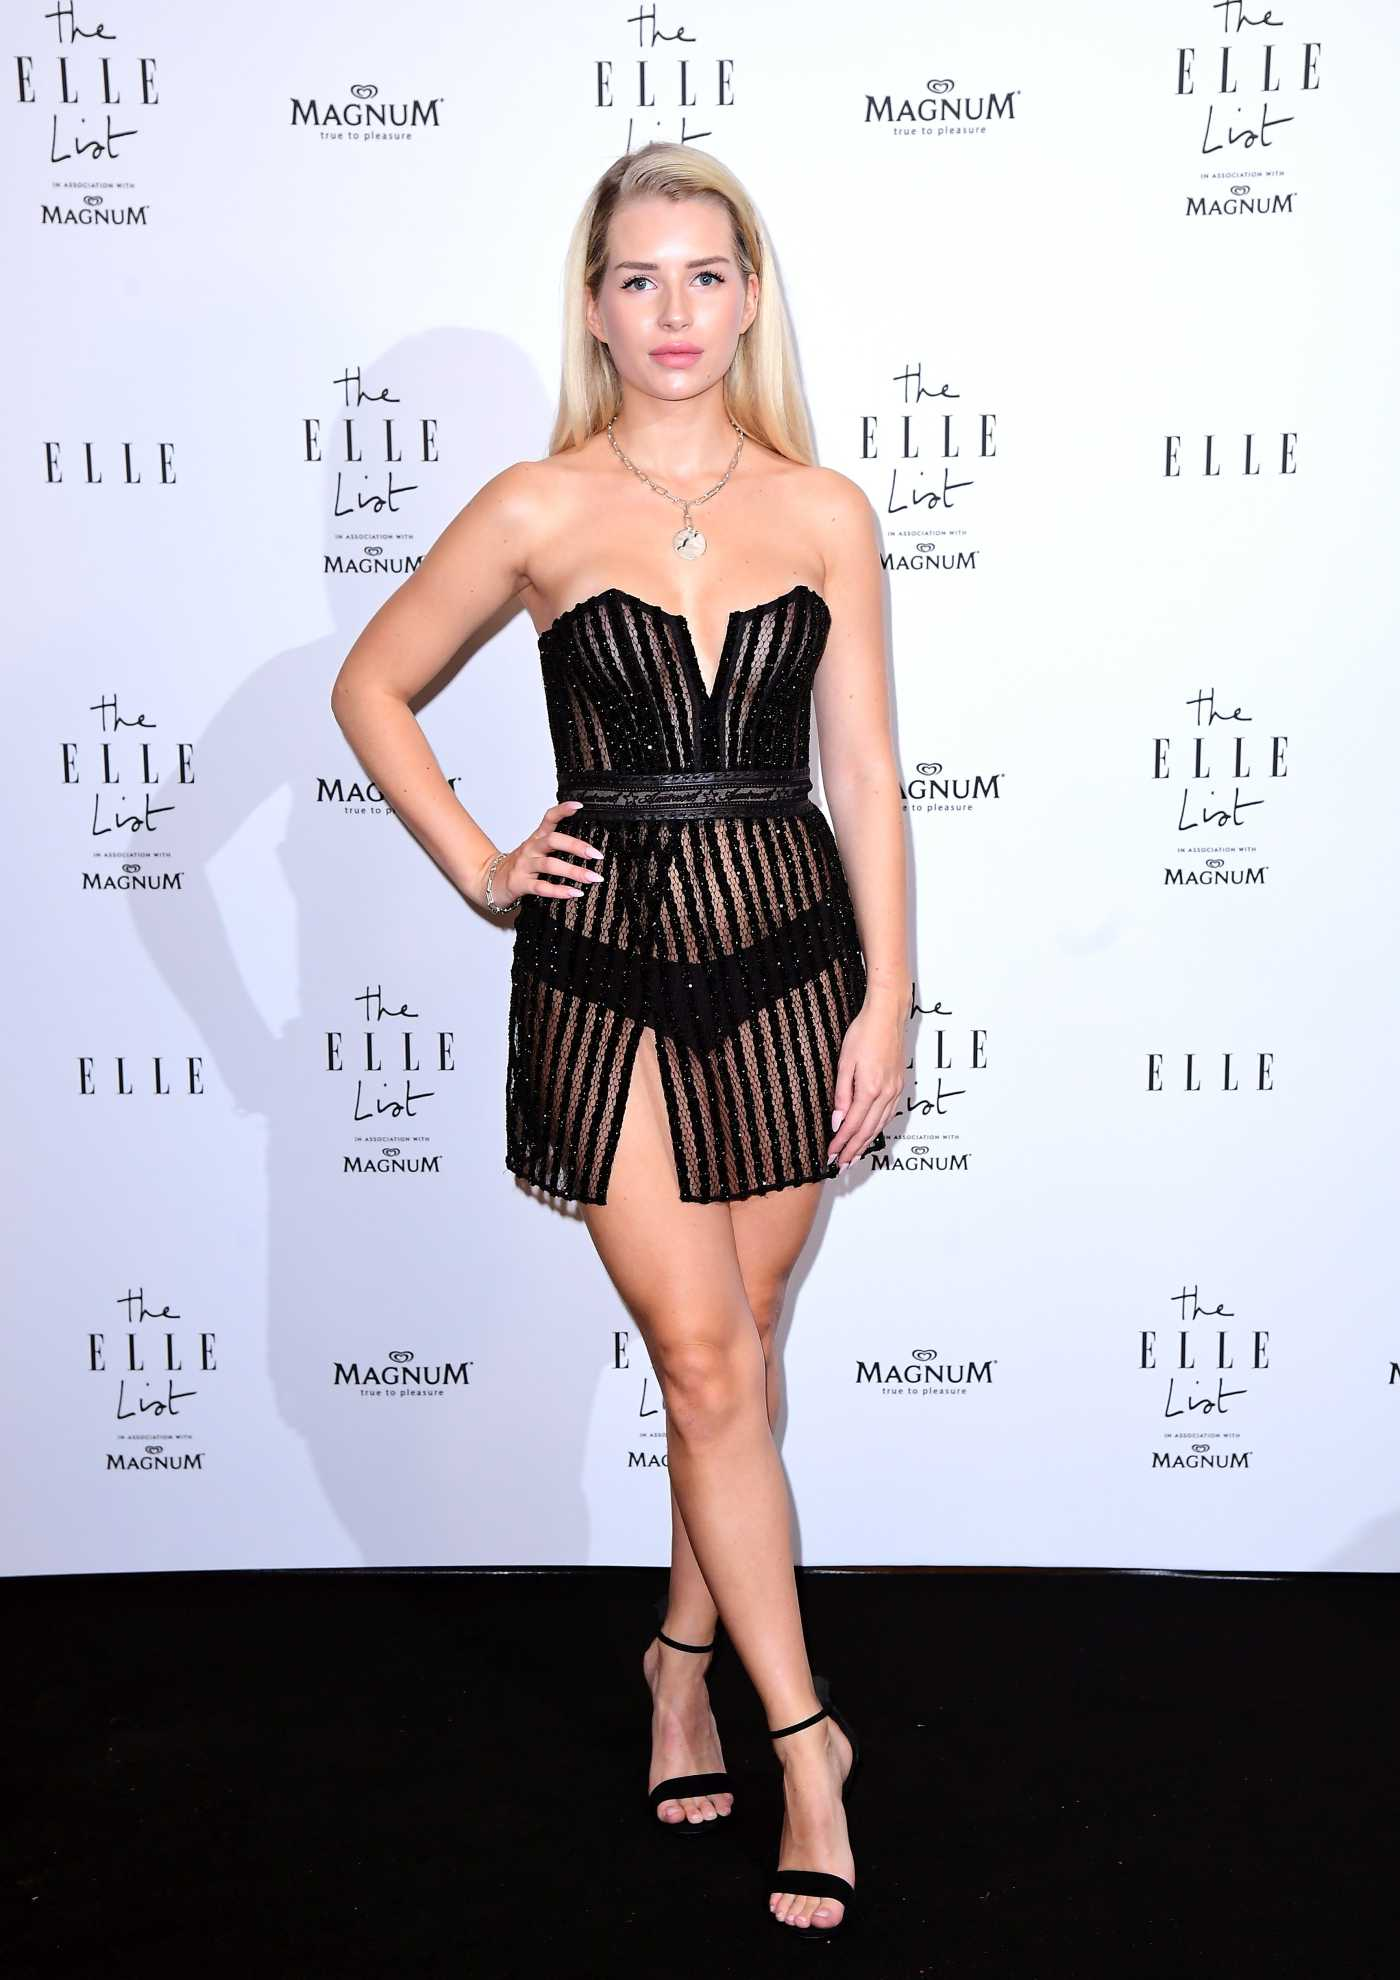 Lottie Moss Celebrates the ELLE List in London 06/19/2019